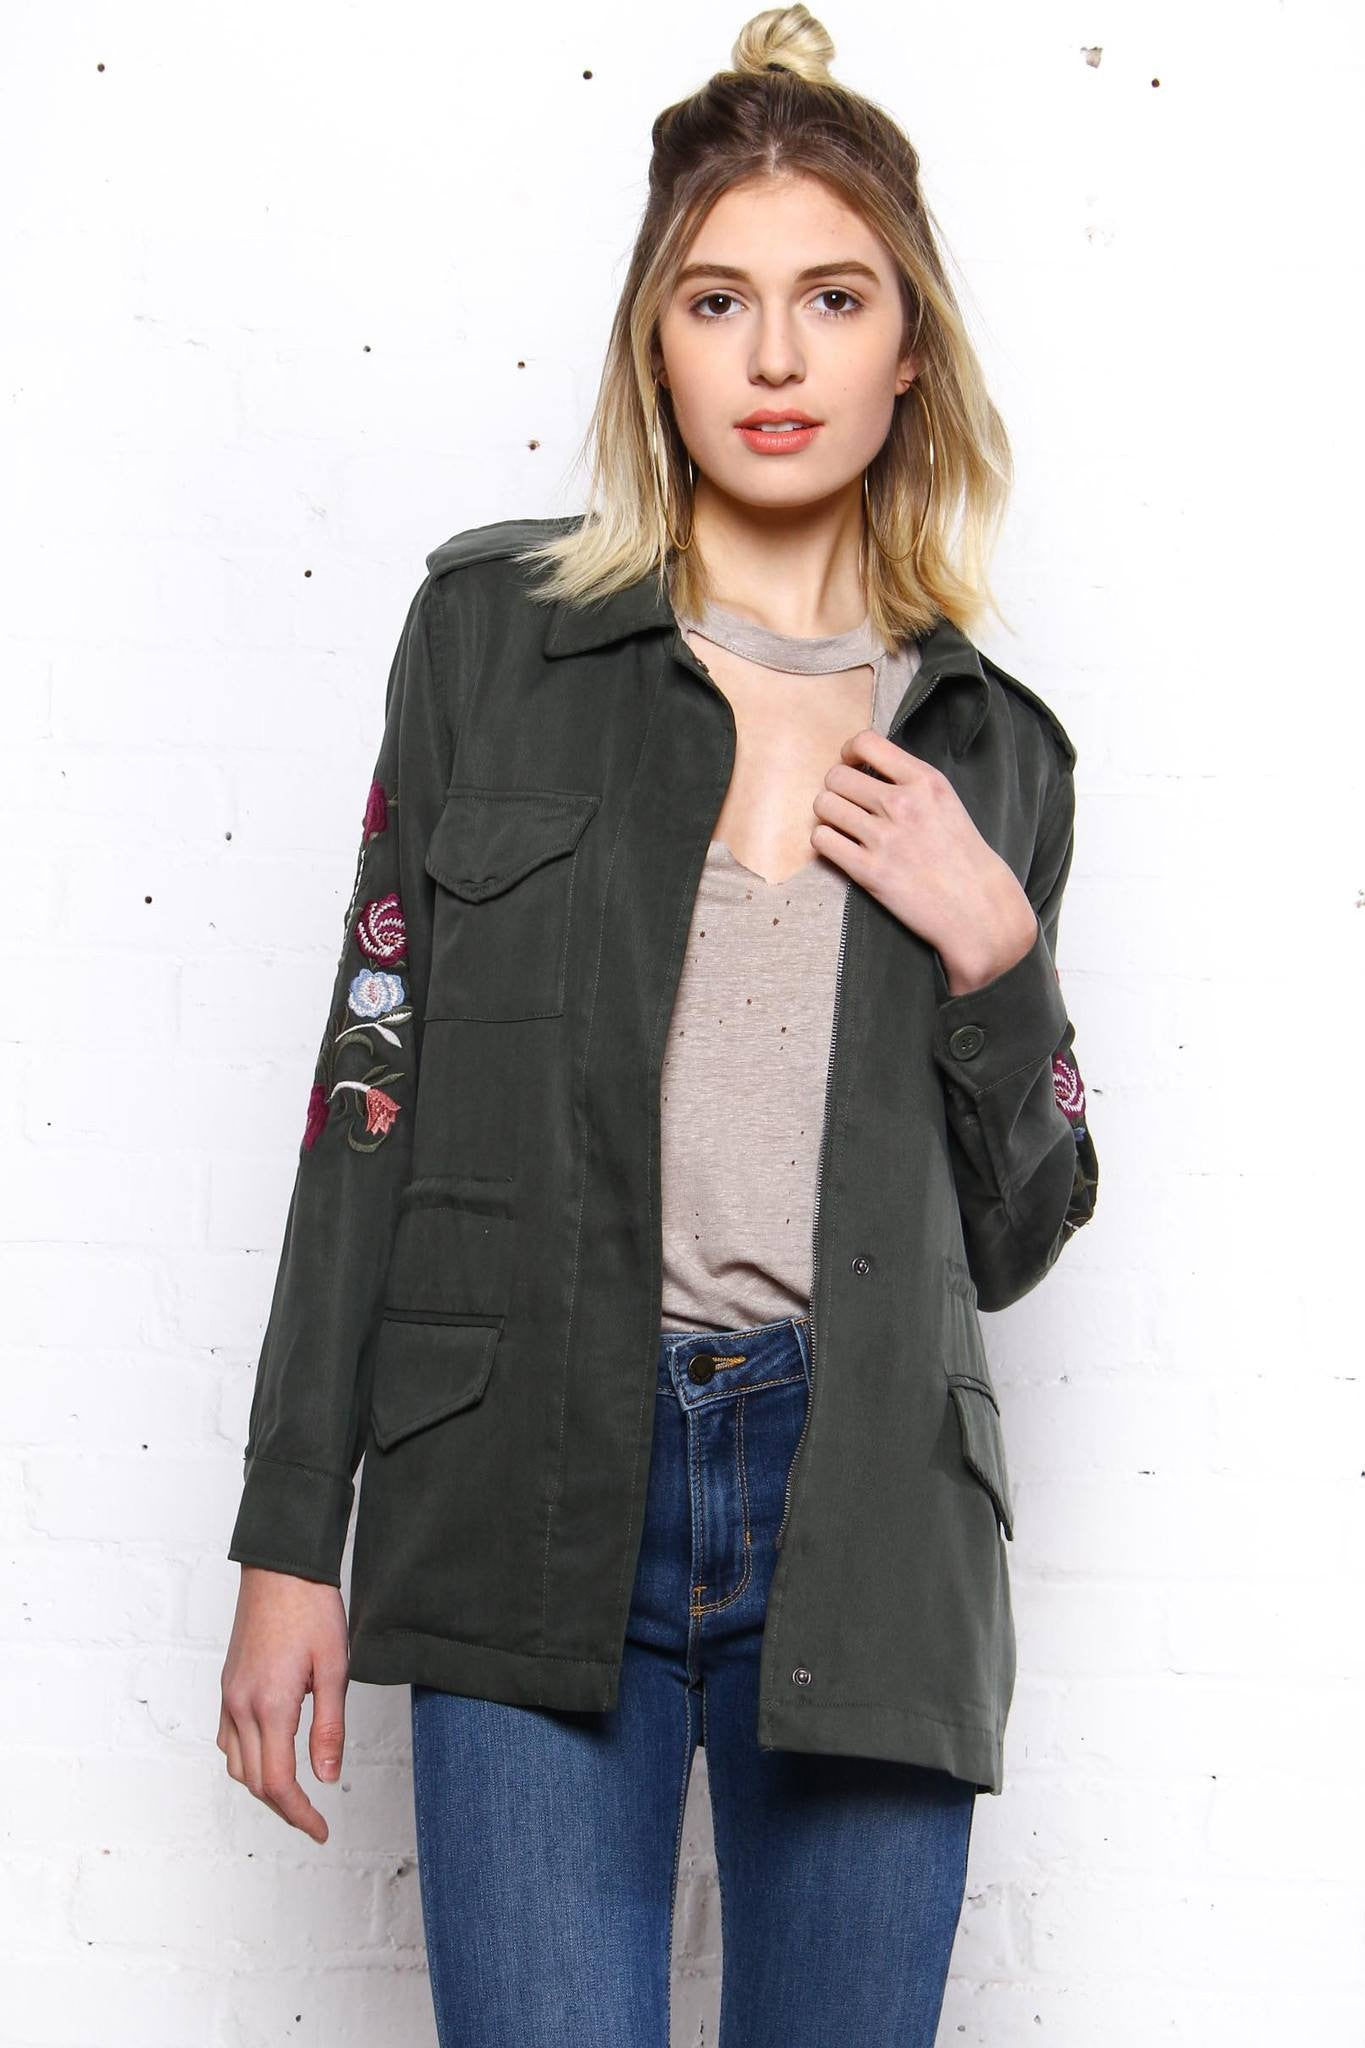 BB Dakota Miller Embroidered Army Jacket